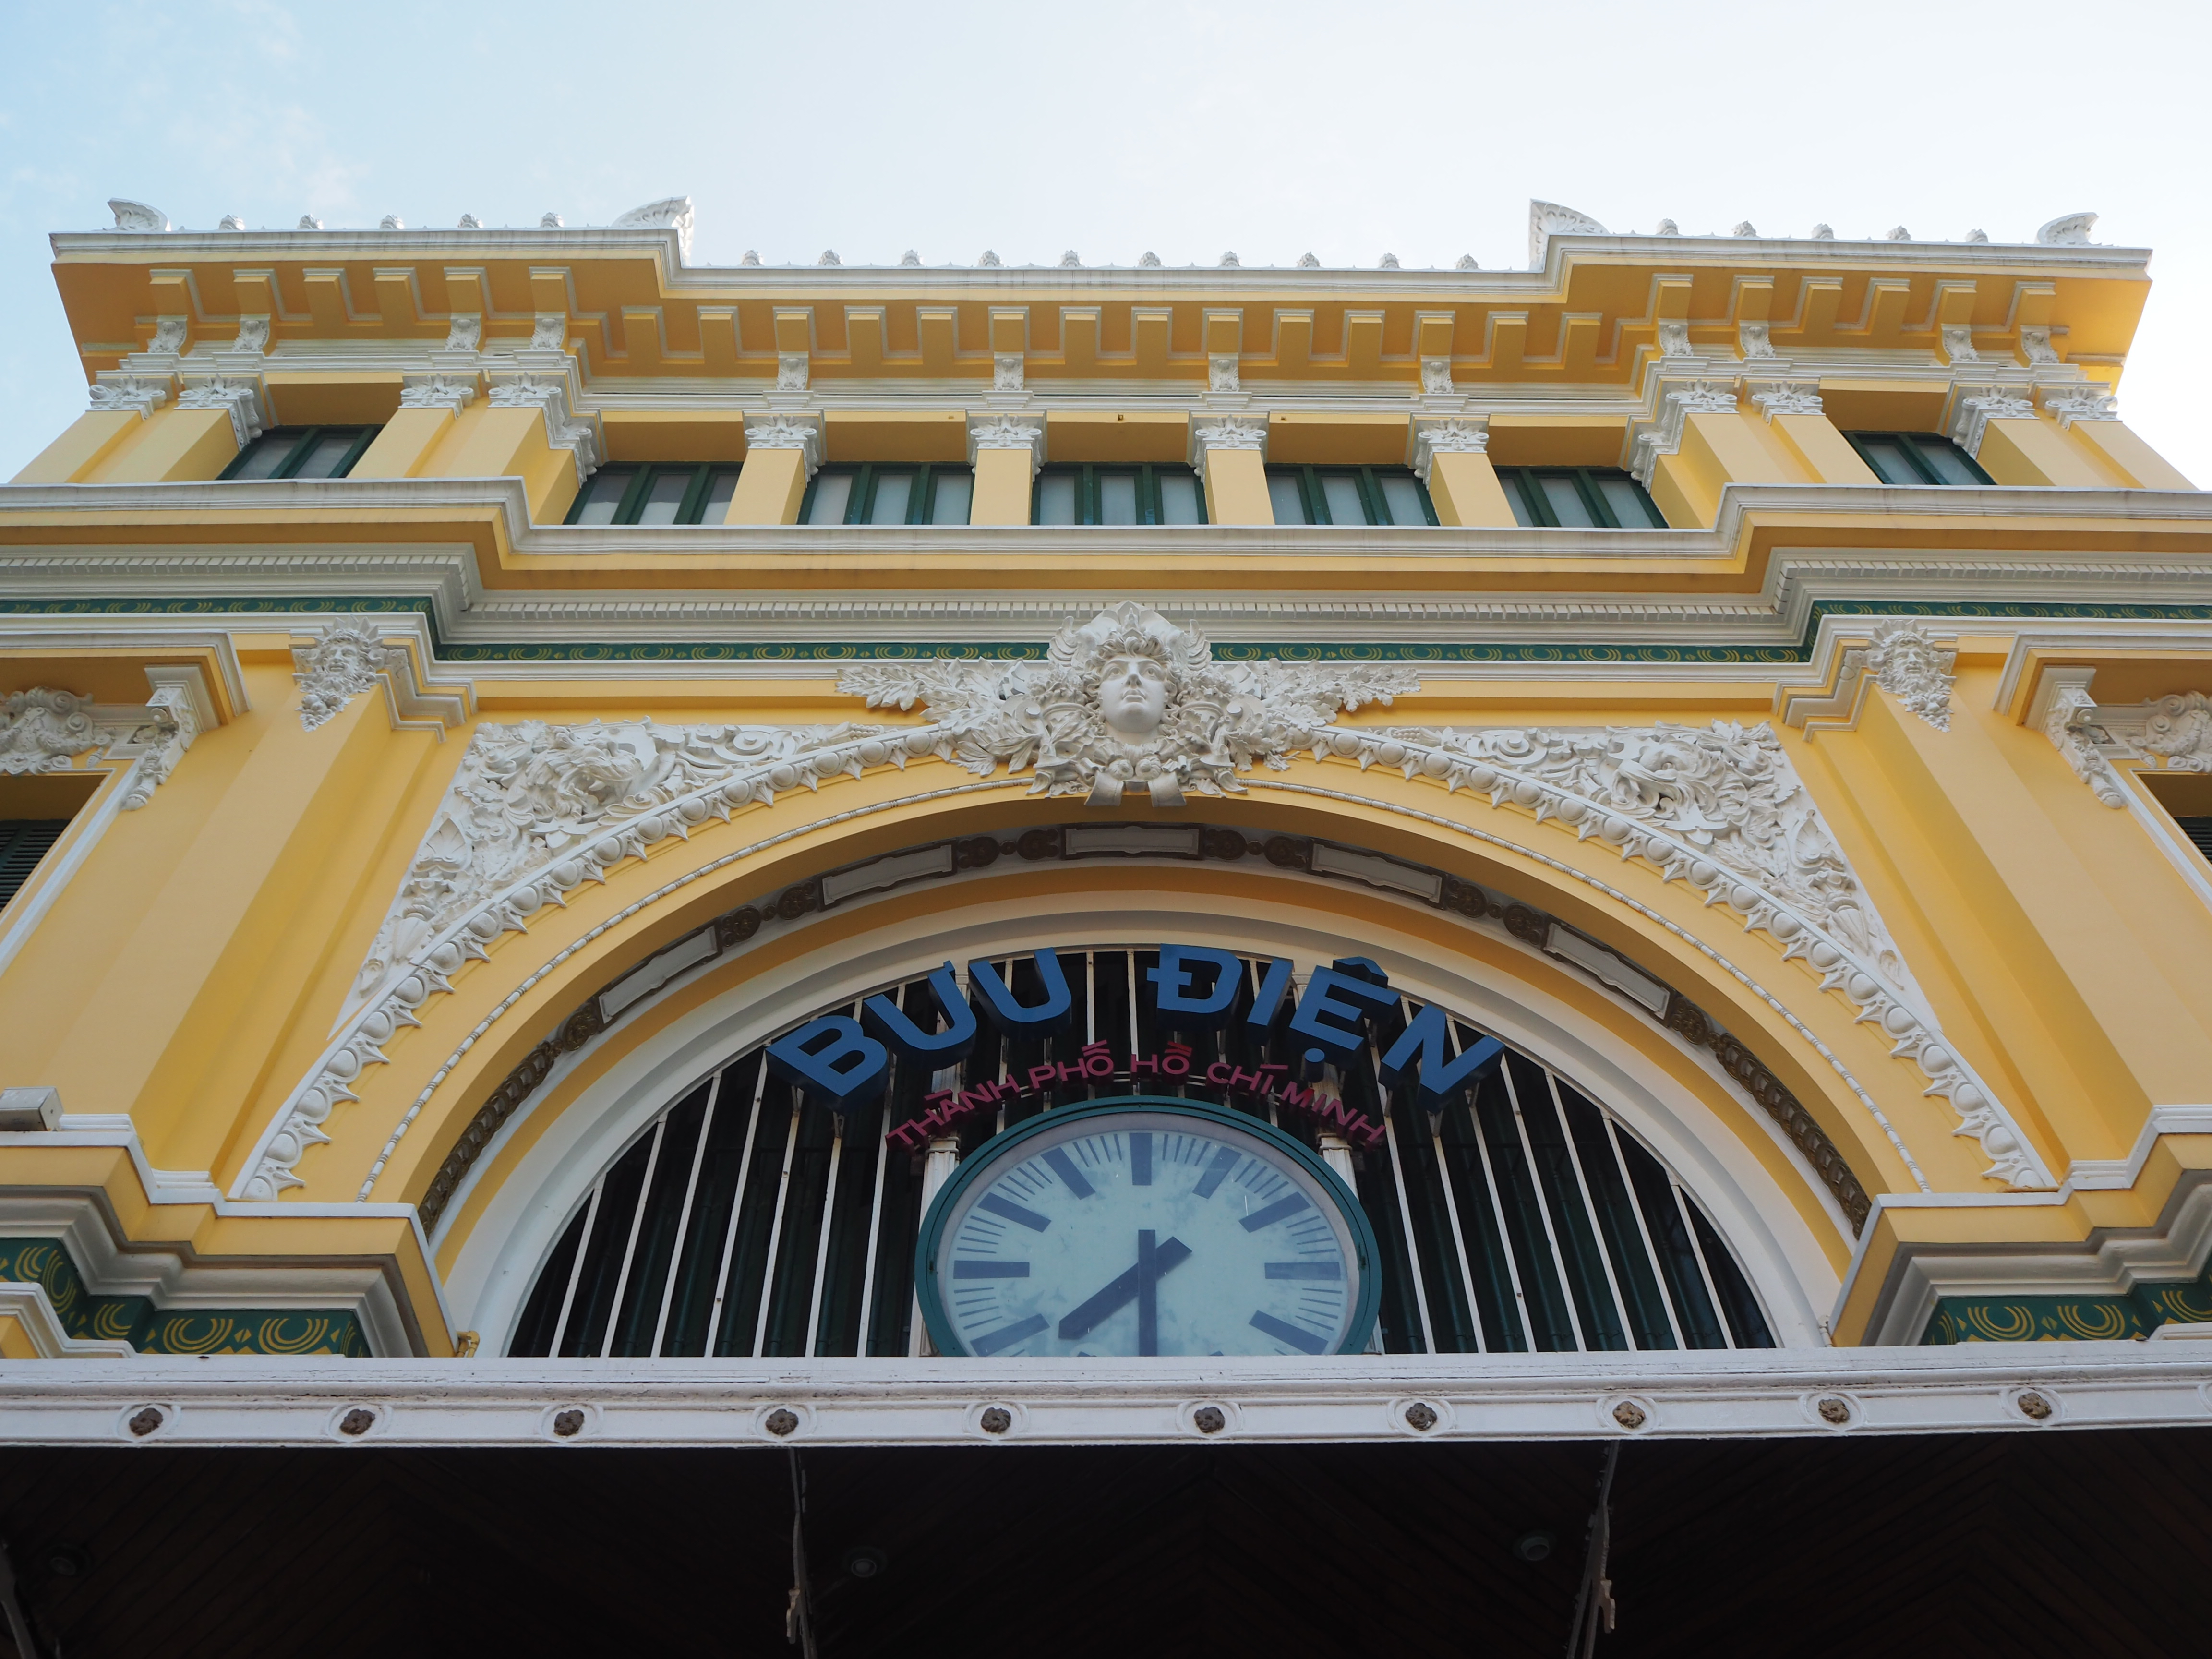 The facade of the post office in Saigon designed by Gustave Eiffel